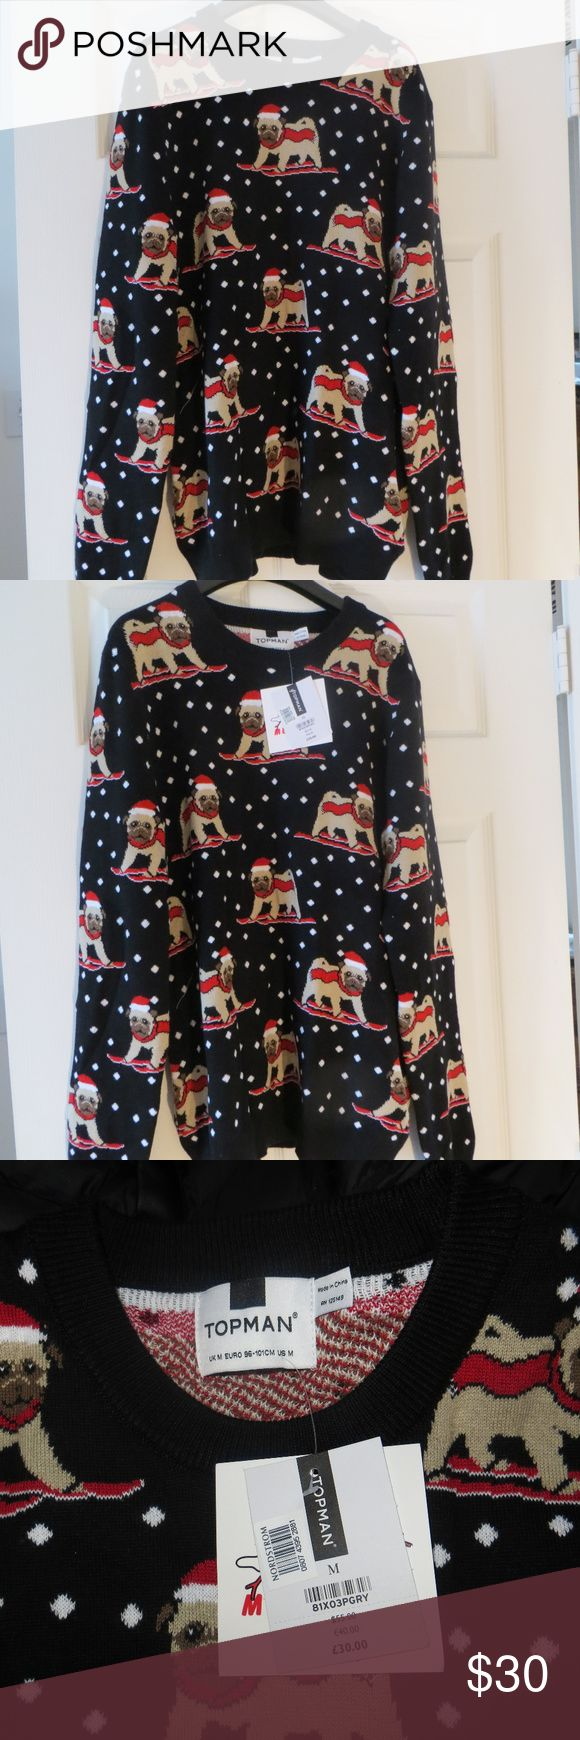 Pug Sweater Super warm sweater featuring a Pug wearing a Santa hat, scarf, & skis.  This is a MEN'S Medium. Topman Sweaters Crewneck